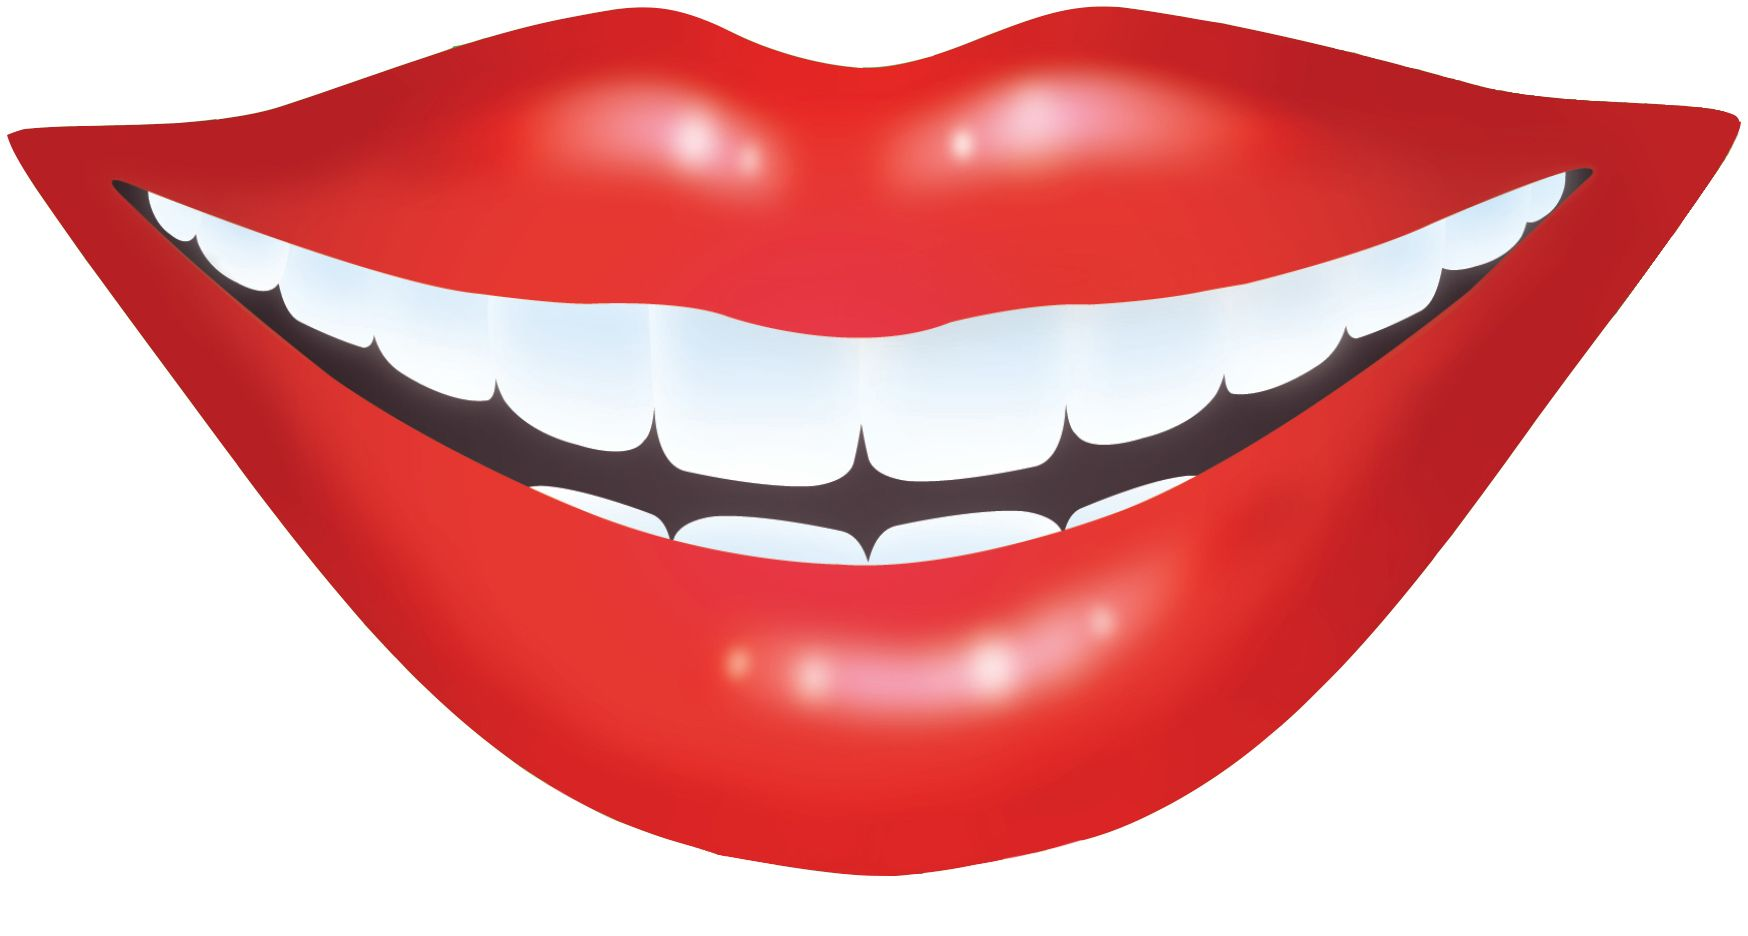 Cartoon lips clipartfest drawing. Lip clipart